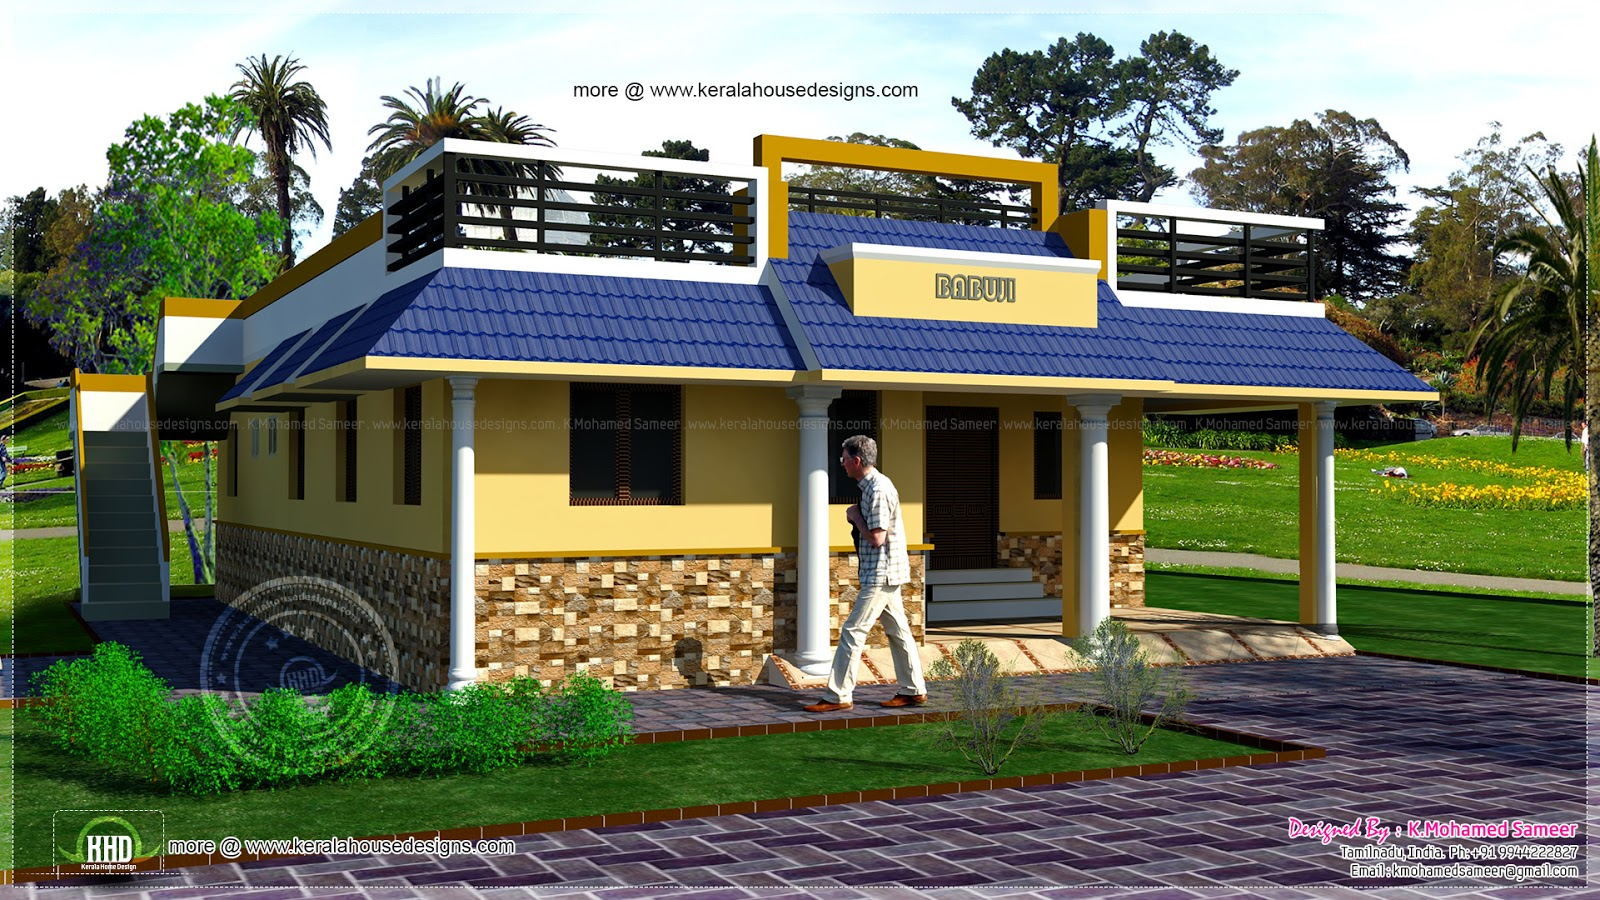 3 bedroom single floor house plan kerala home design and for Bedroom designs tamilnadu